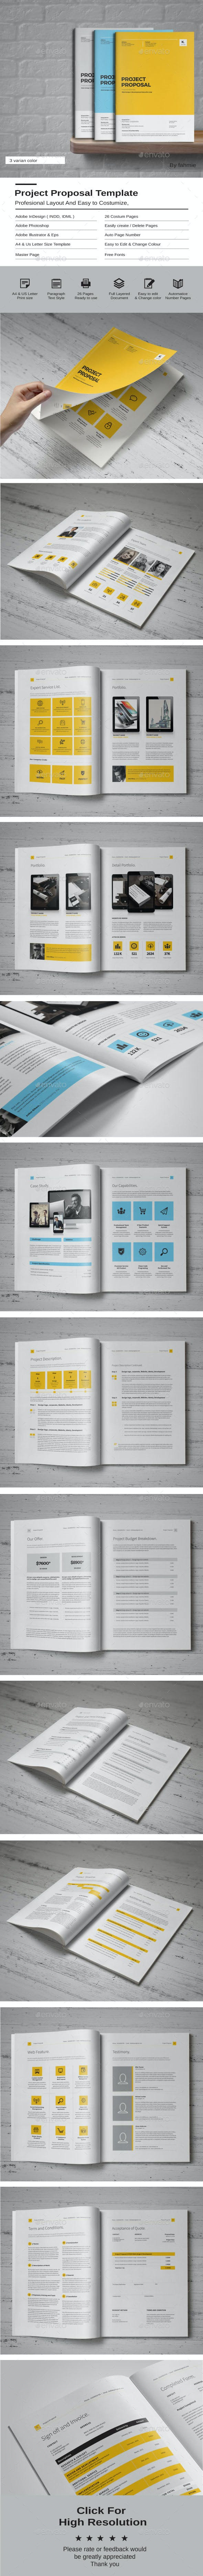 Proposal Template By Fahmie Graphicriver